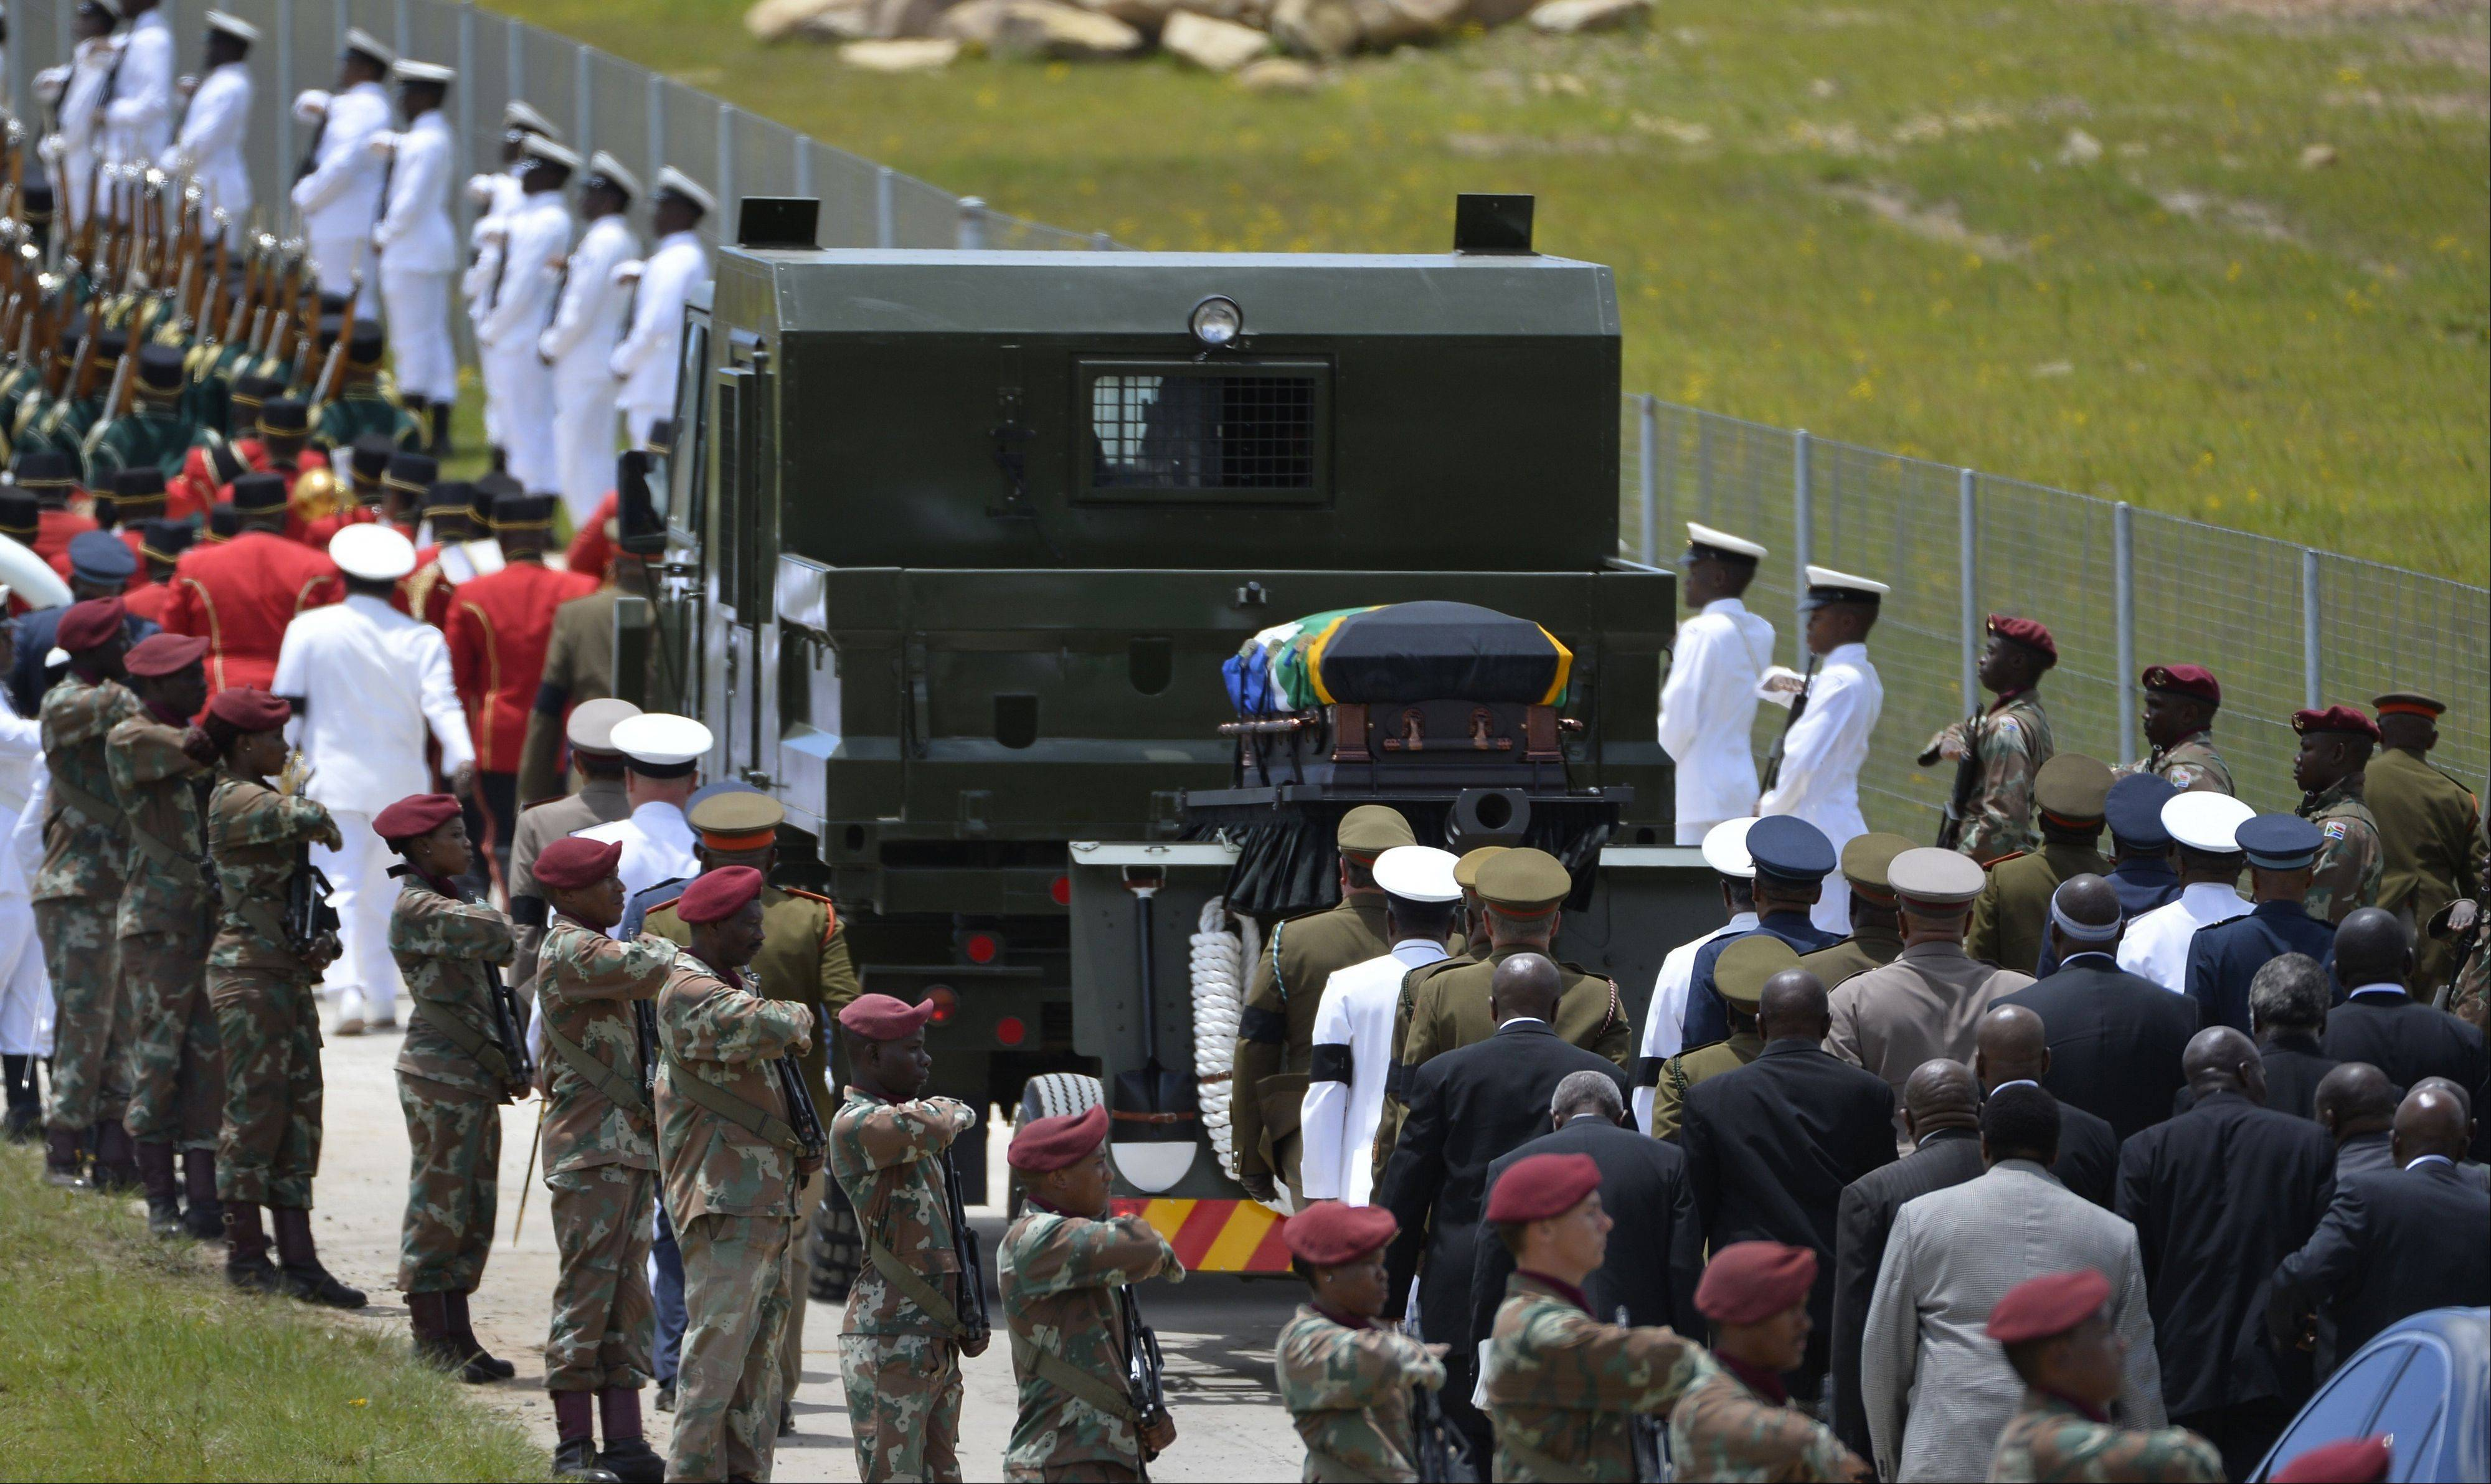 Former South African President Nelson Mandela�s casket is take by military gun carriage to his burial place following his funeral service in Qunu, South Africa, Sunday, Dec. 15, 2013.